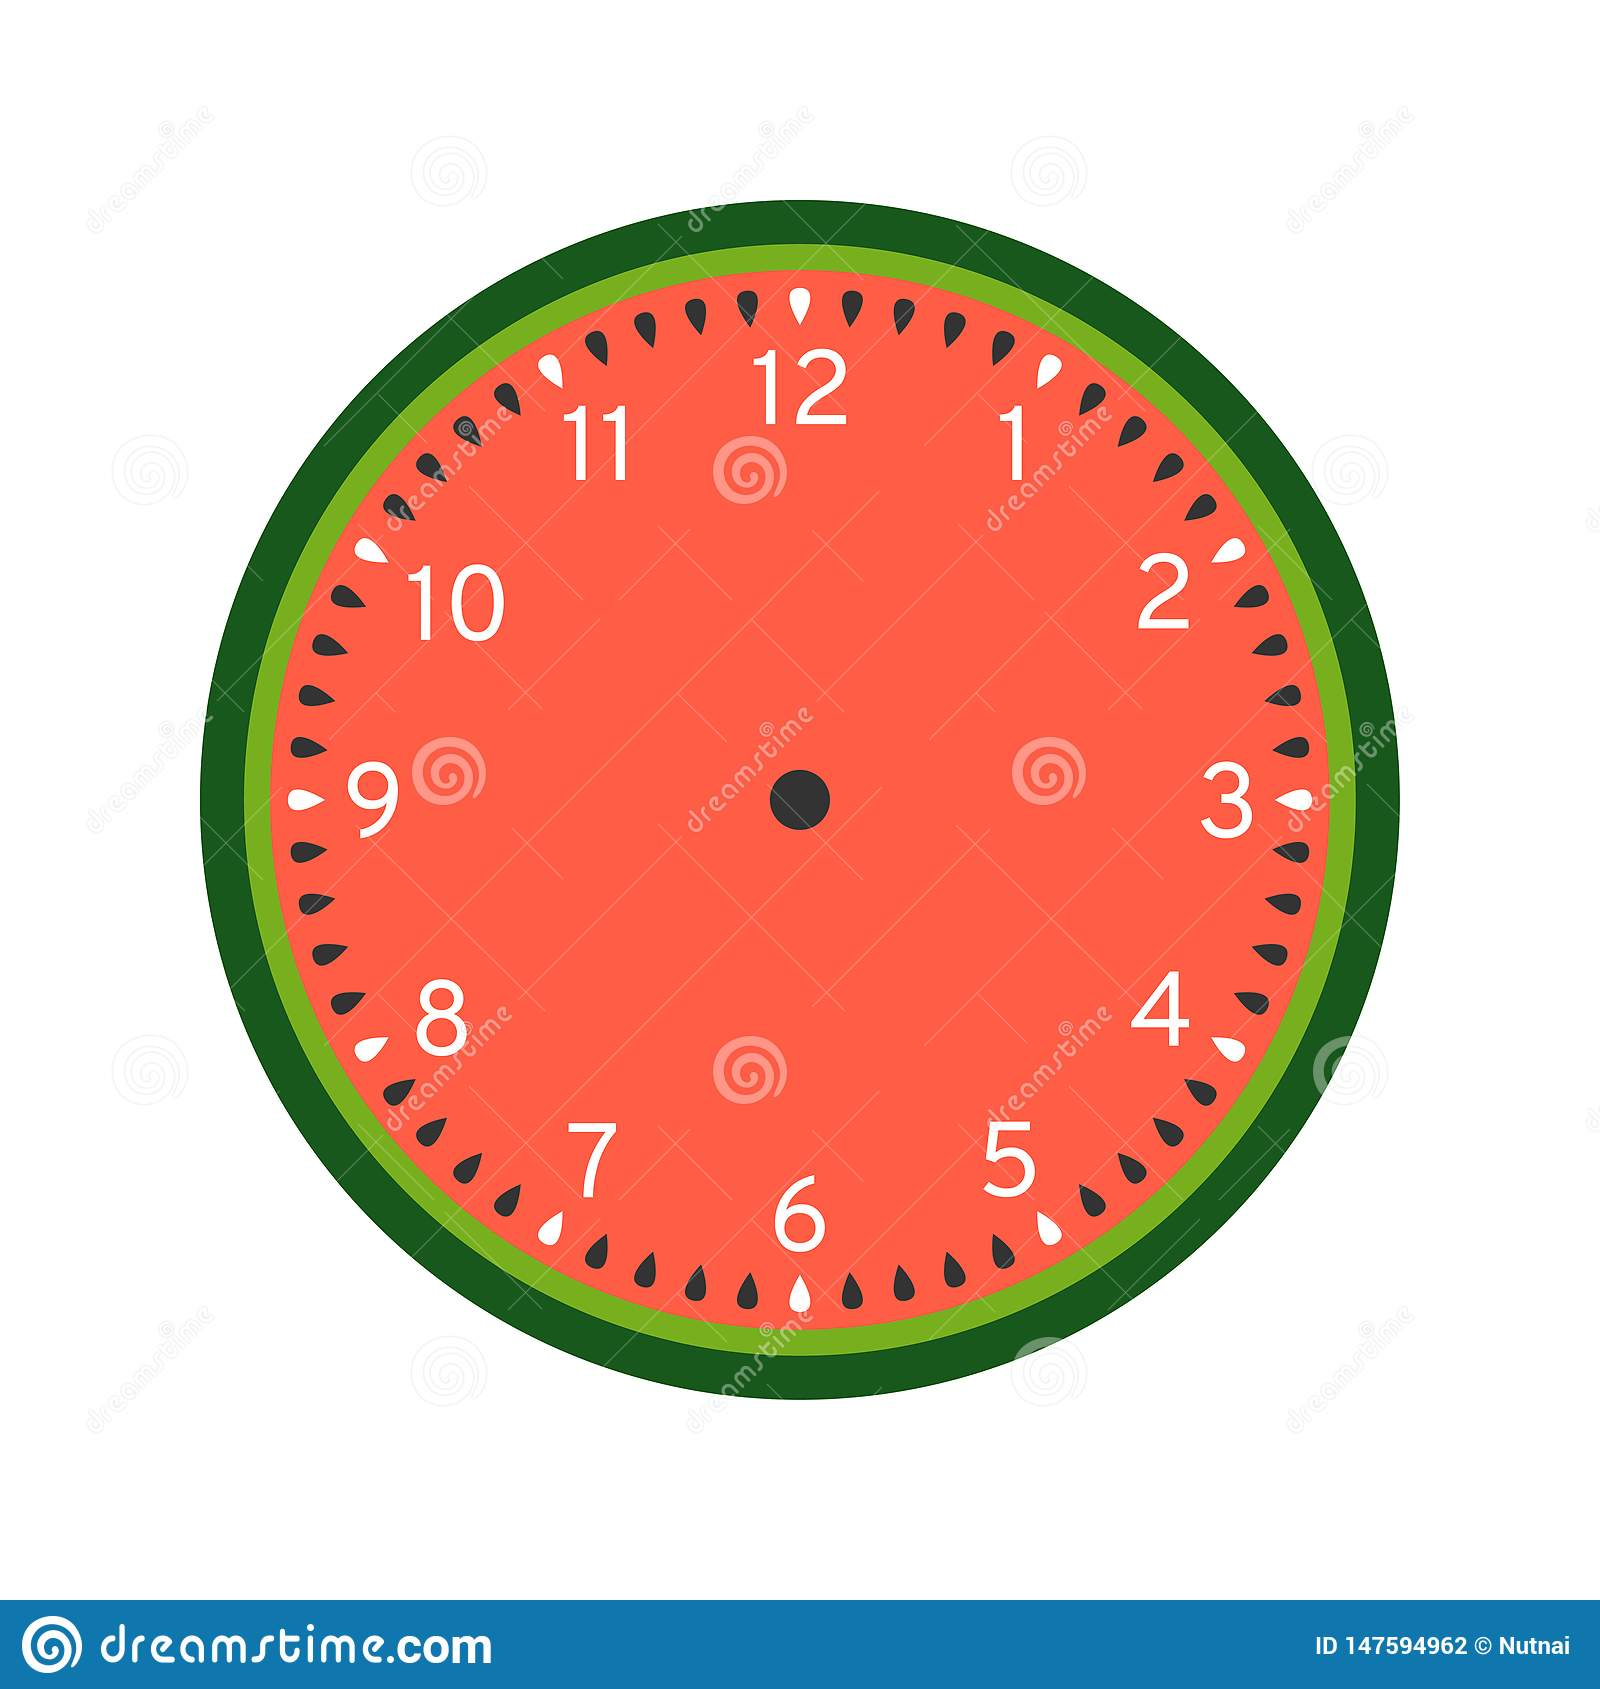 graphic about Clock Printable named Watermelon Printable Clock Deal with Template Inventory Vector